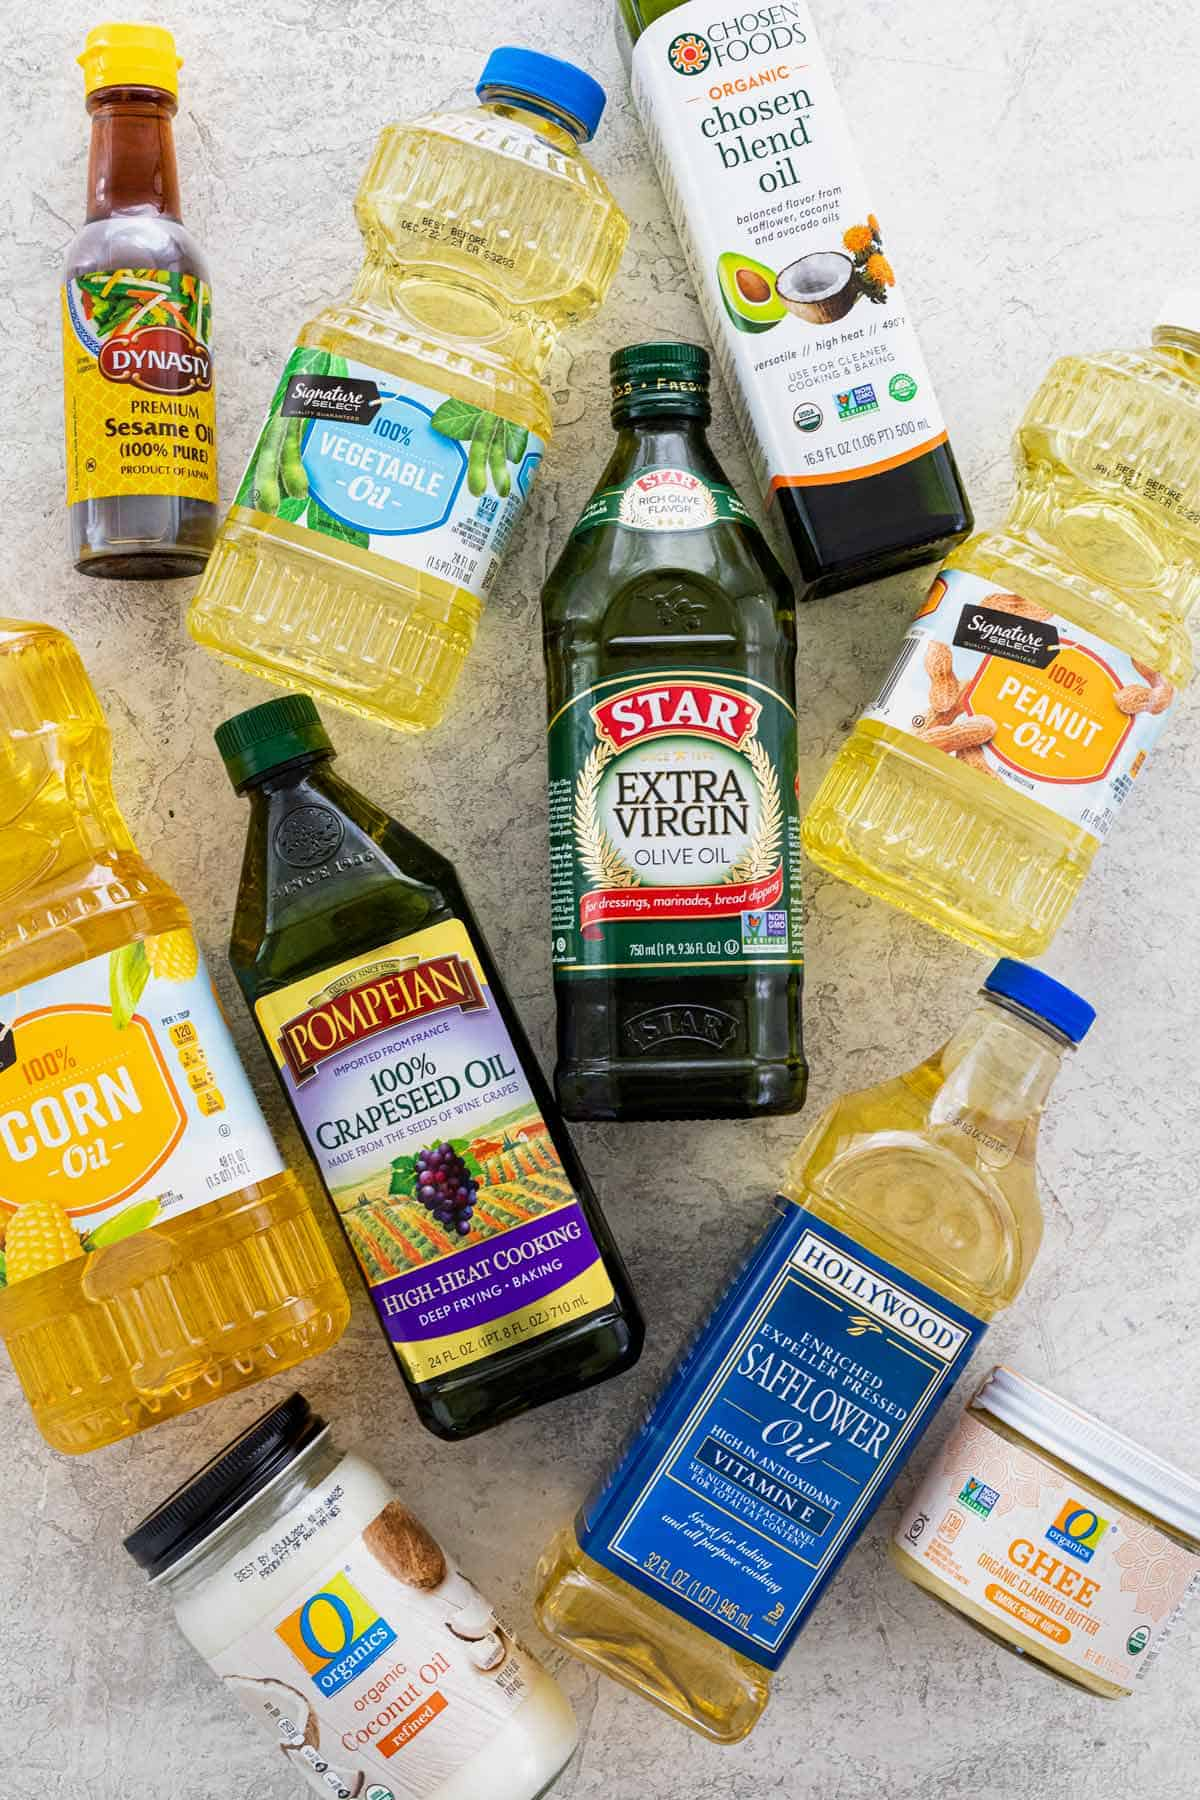 22 Types of Cooking Oils and Fats